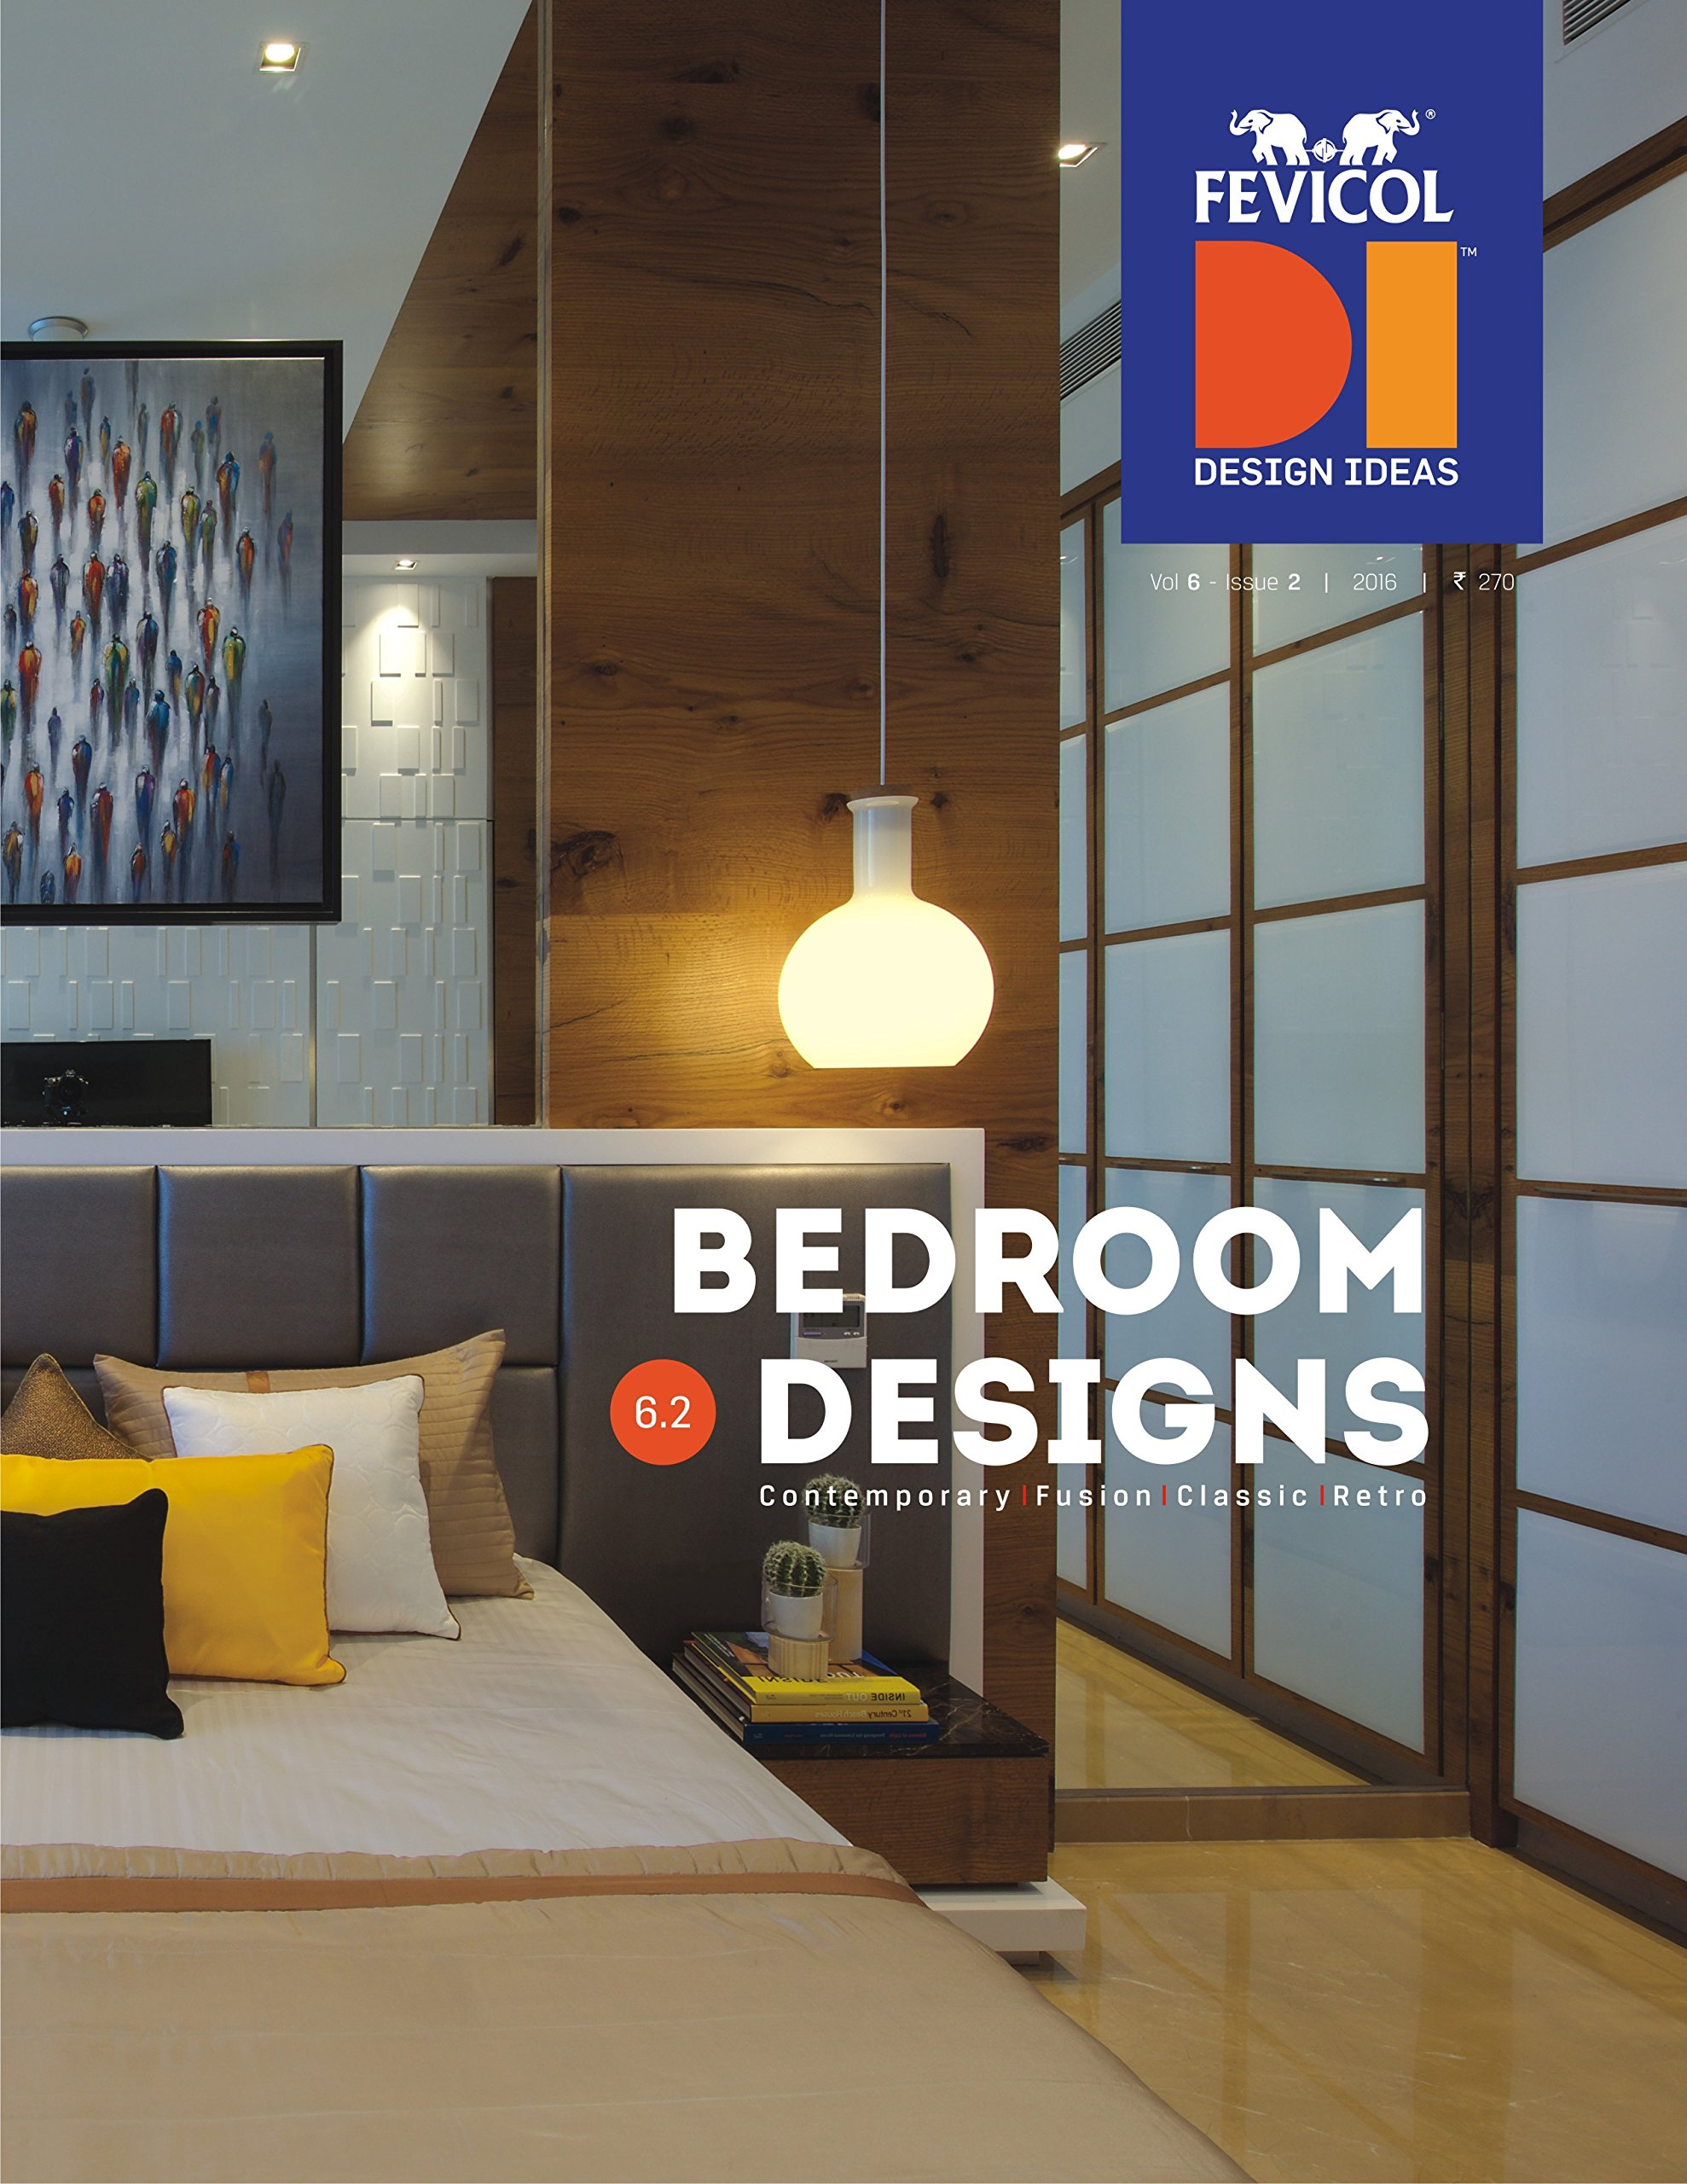 Buy Fevicol Design Ideas Bedroom Designs Book Online At Low Prices